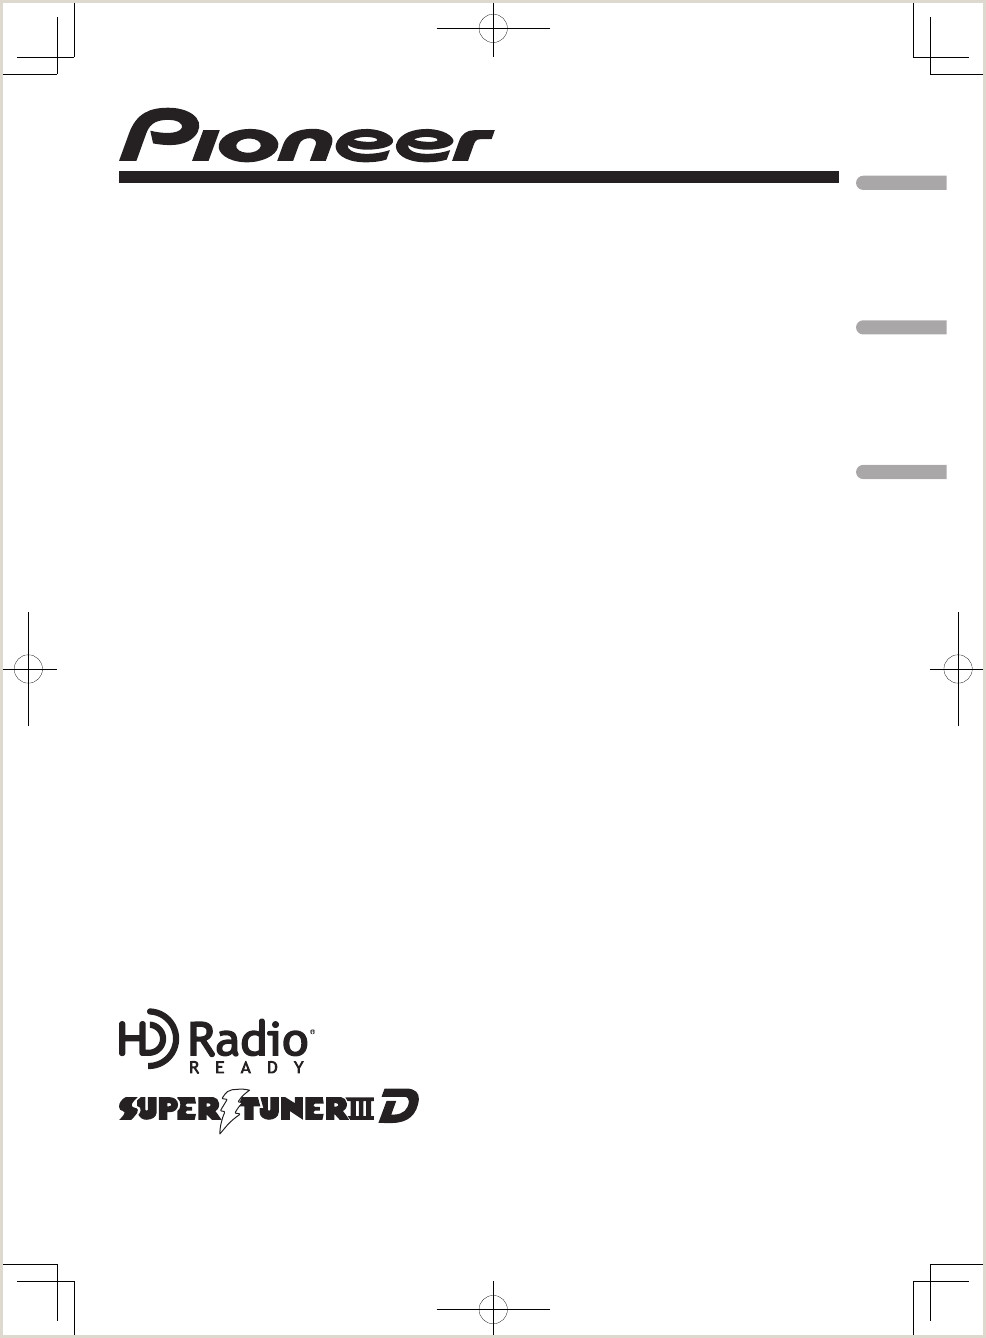 Formato De Hoja De Vida Compensar K029 Media Center Receiver User Manual Pioneer